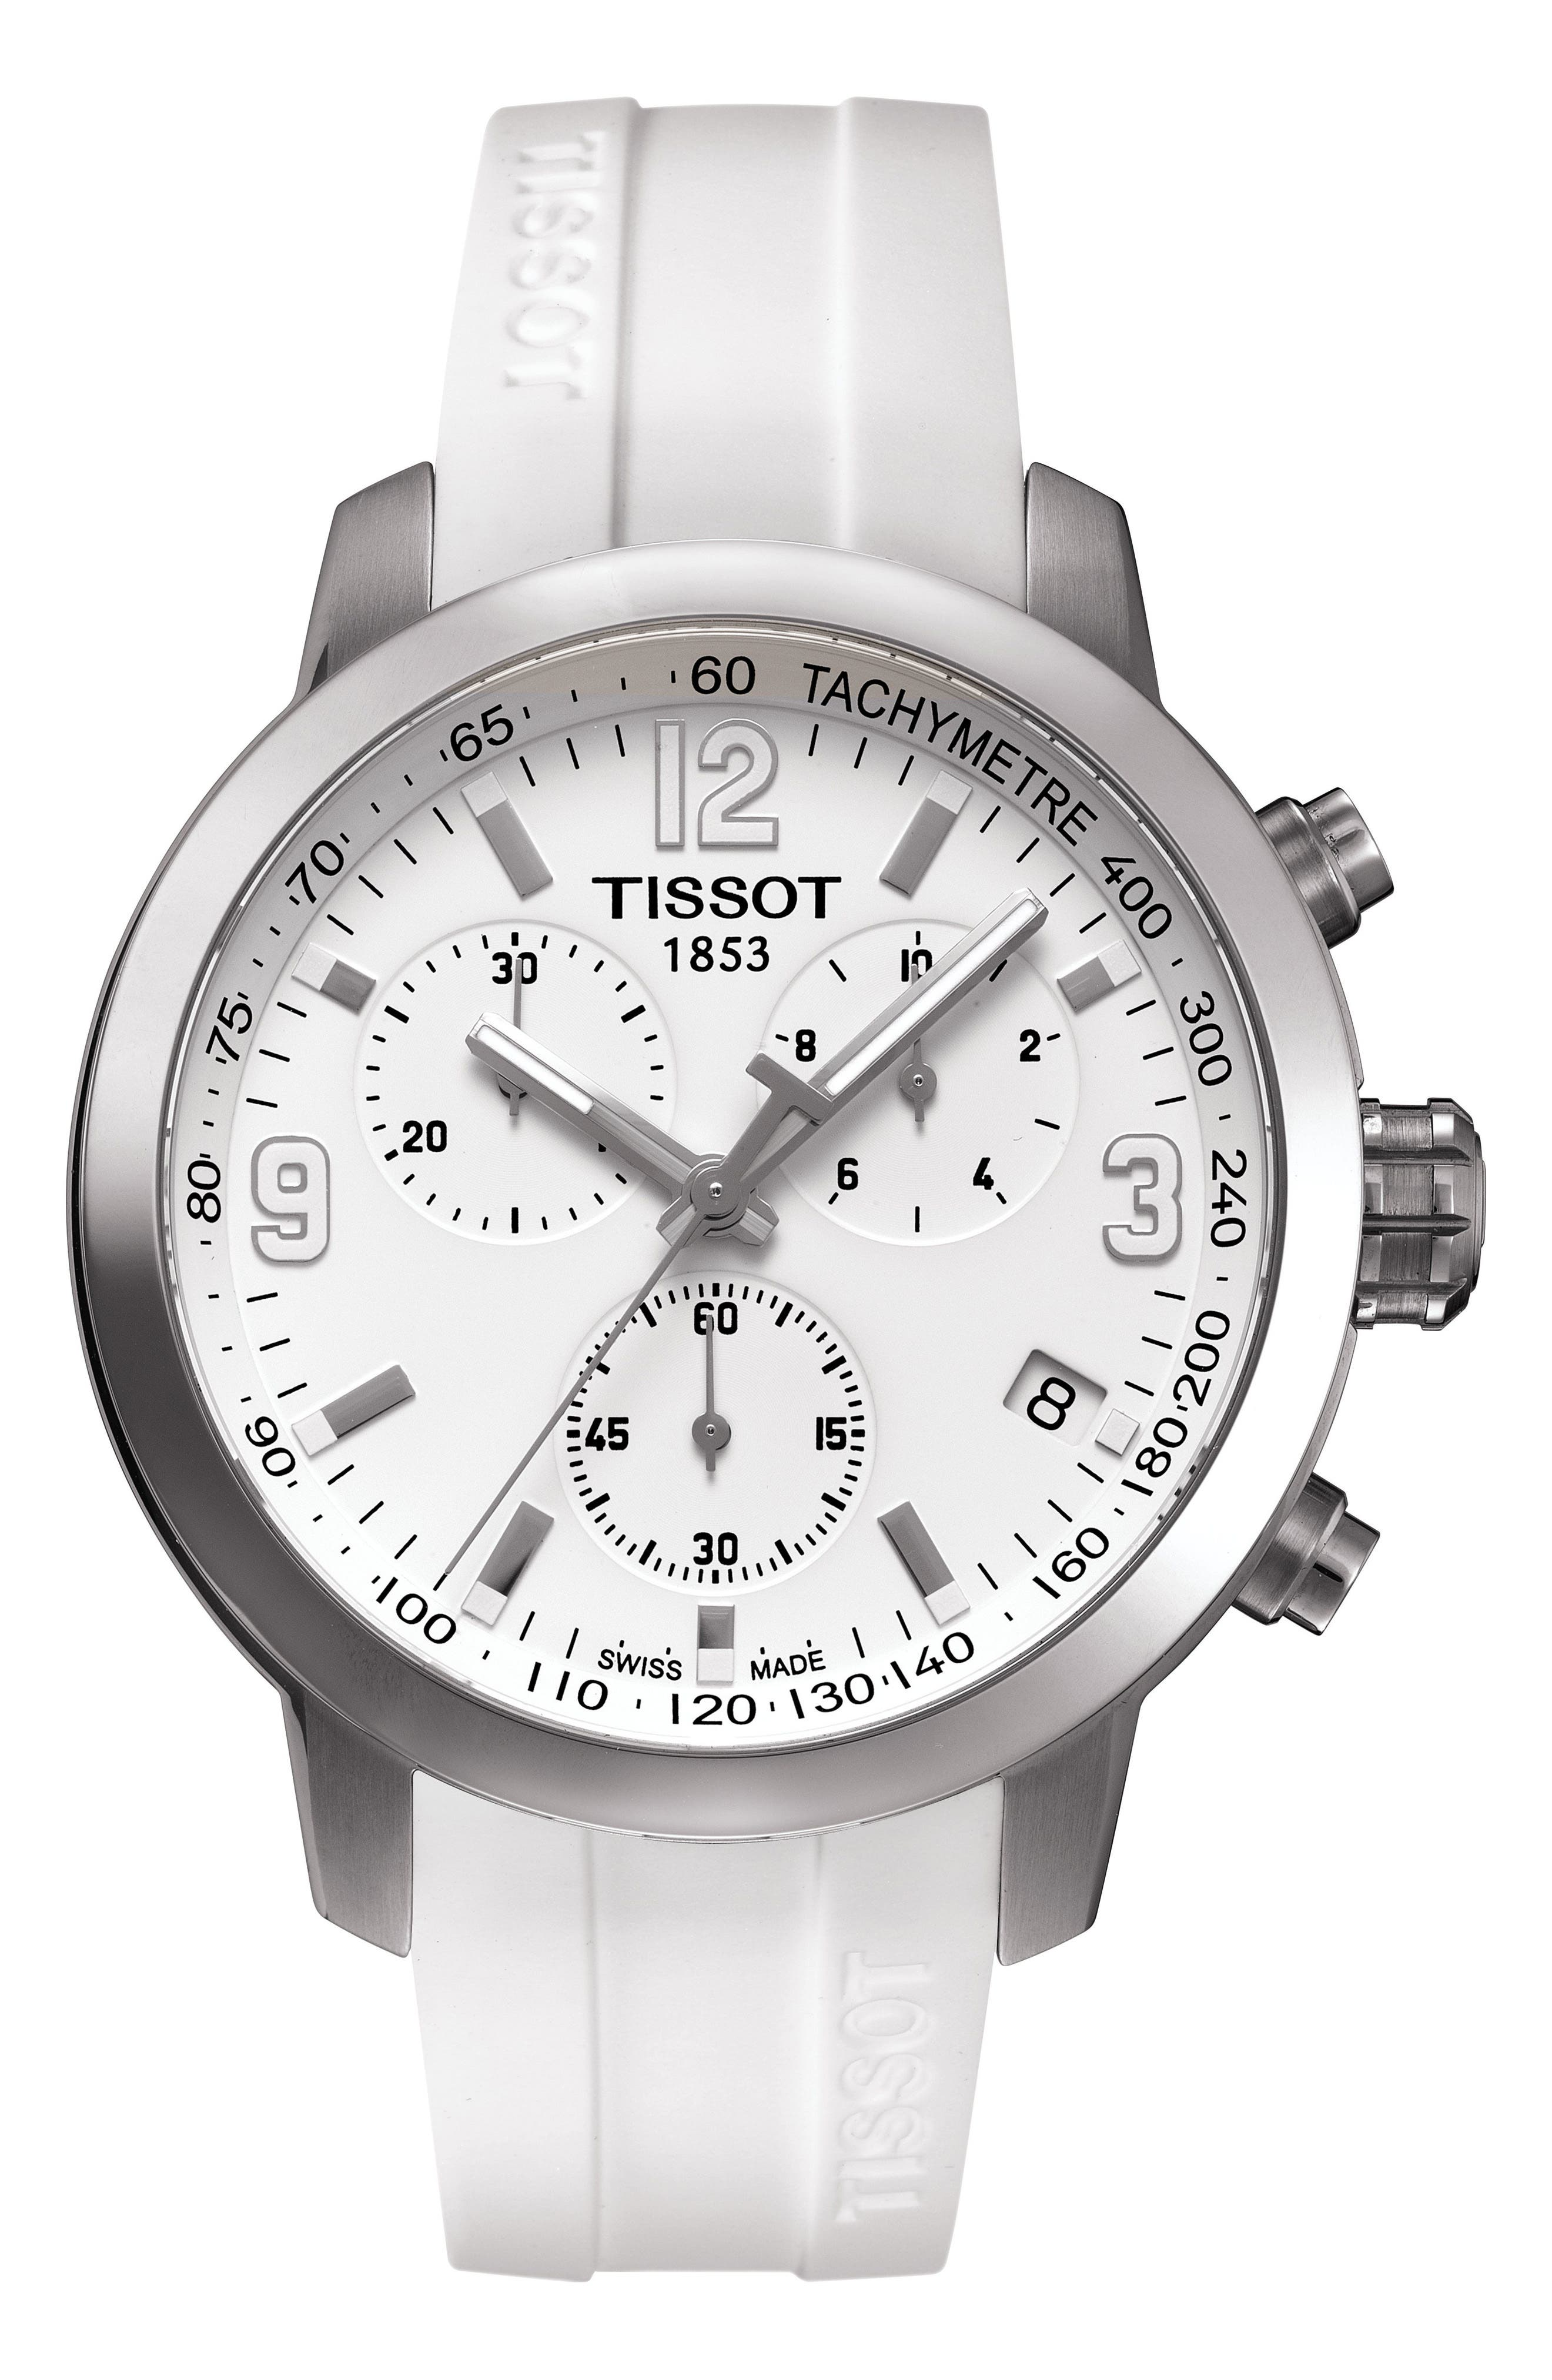 Tissot PRC200 Chronograph Silicone Strap Watch, 41mm